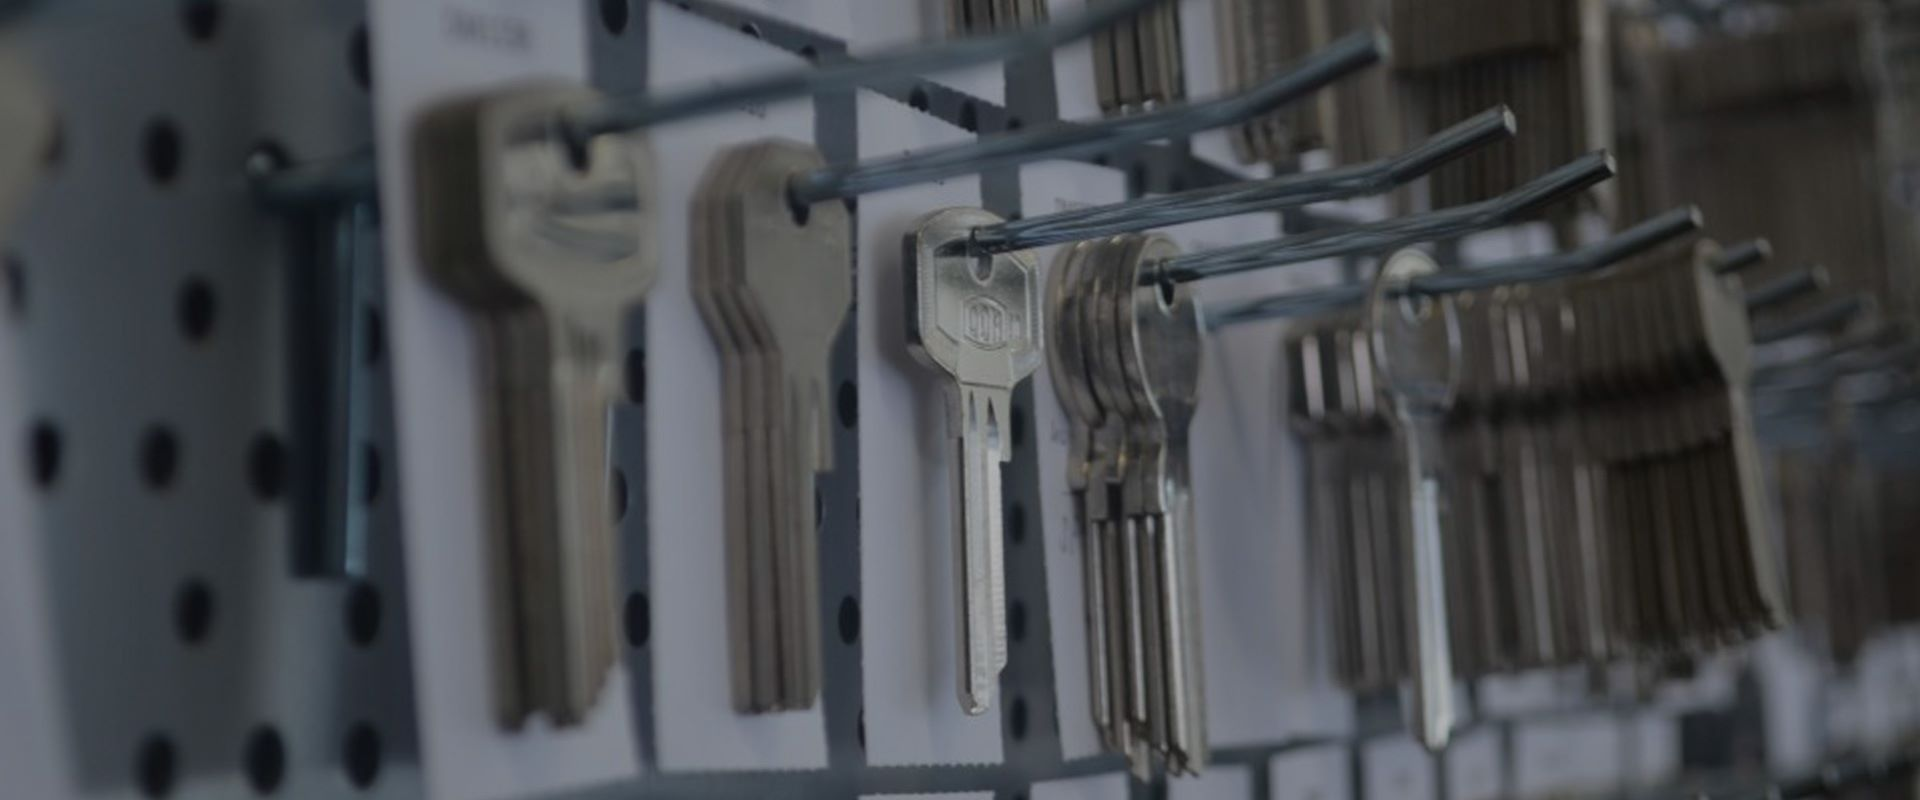 keys hanging on shop display